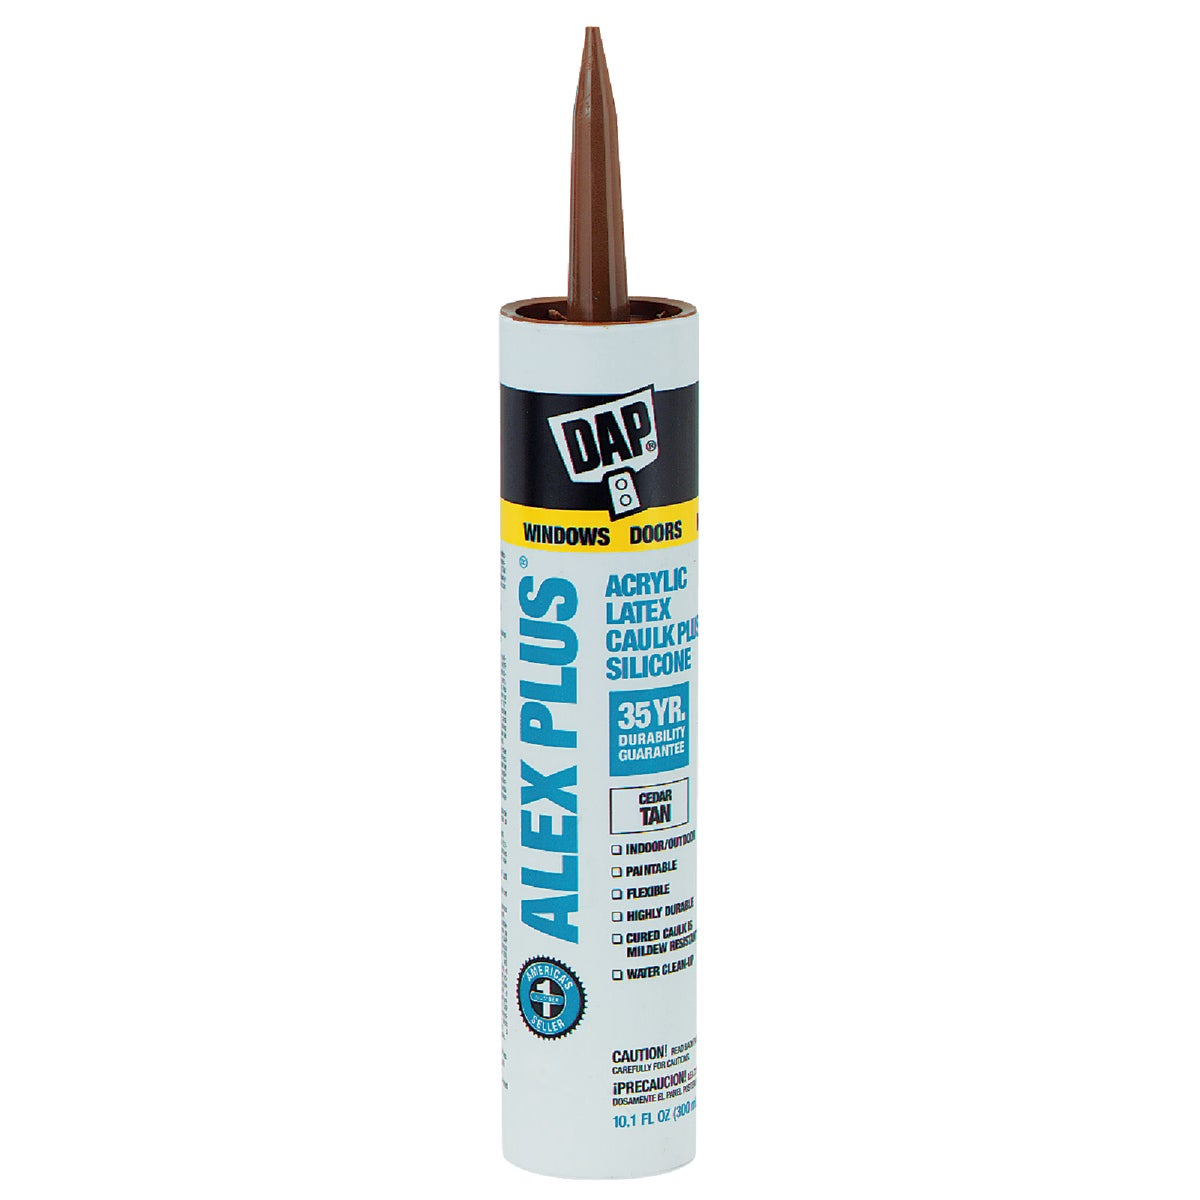 CEDR TAN ALEX PLUS CAULK - 18122 by Dap Inc